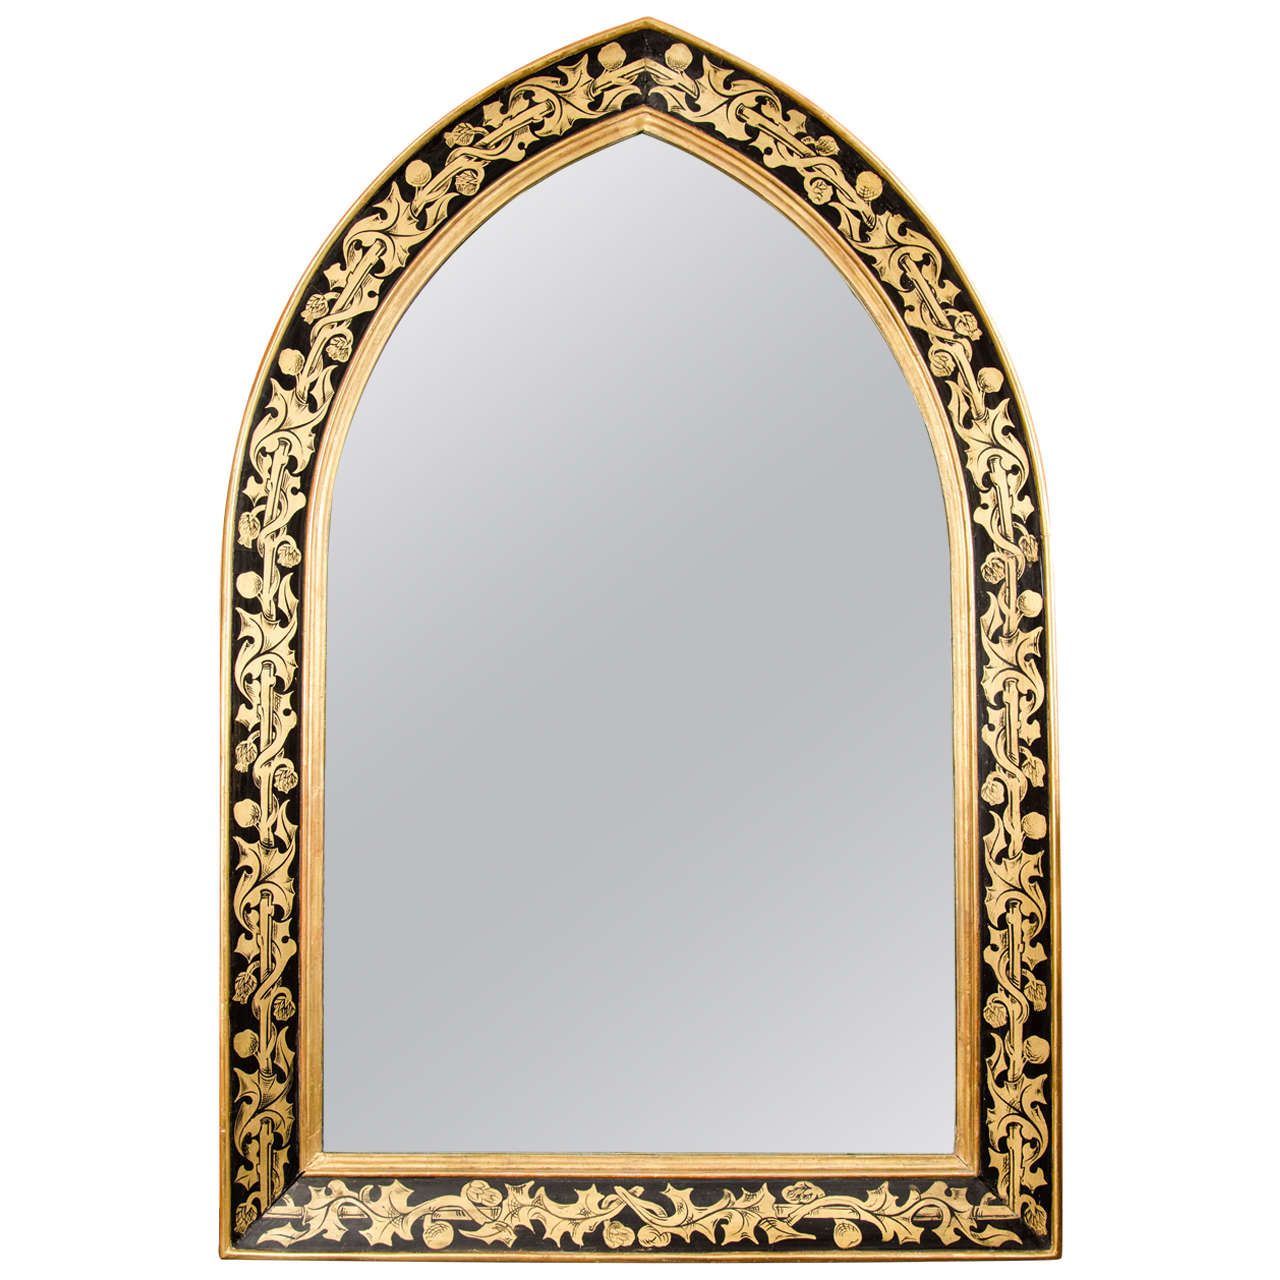 pair of william morris style arched mirrors 1